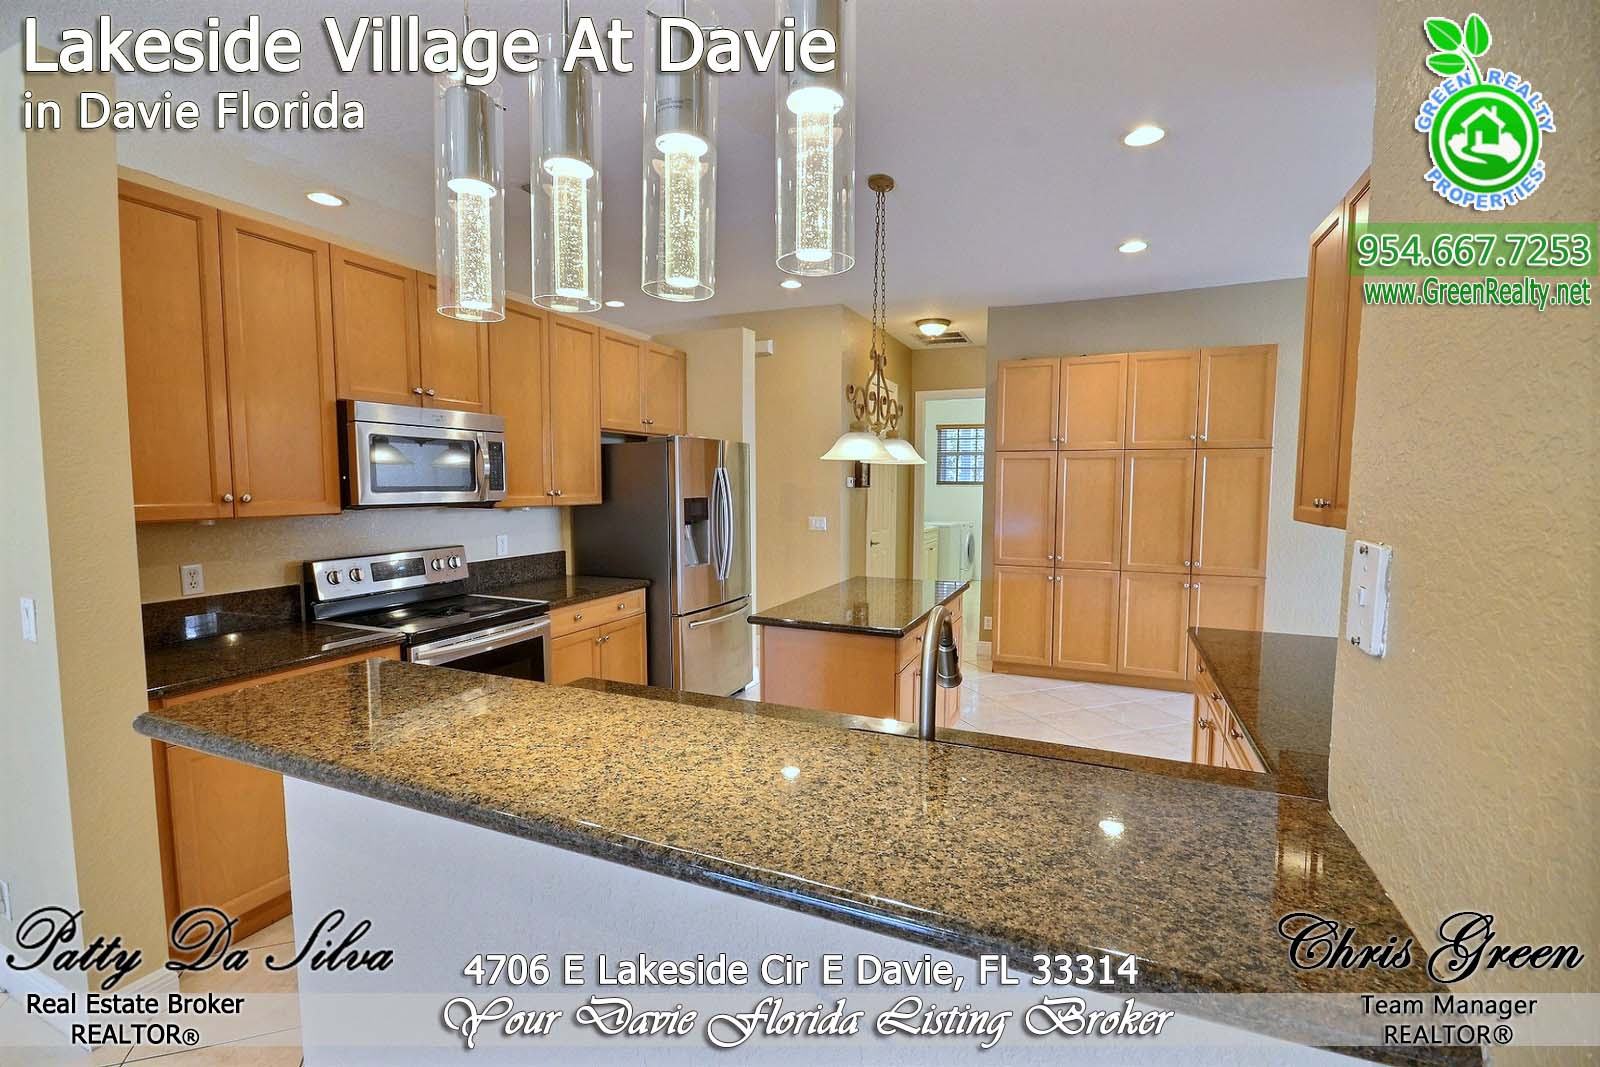 7 Davie Florida Real Estate